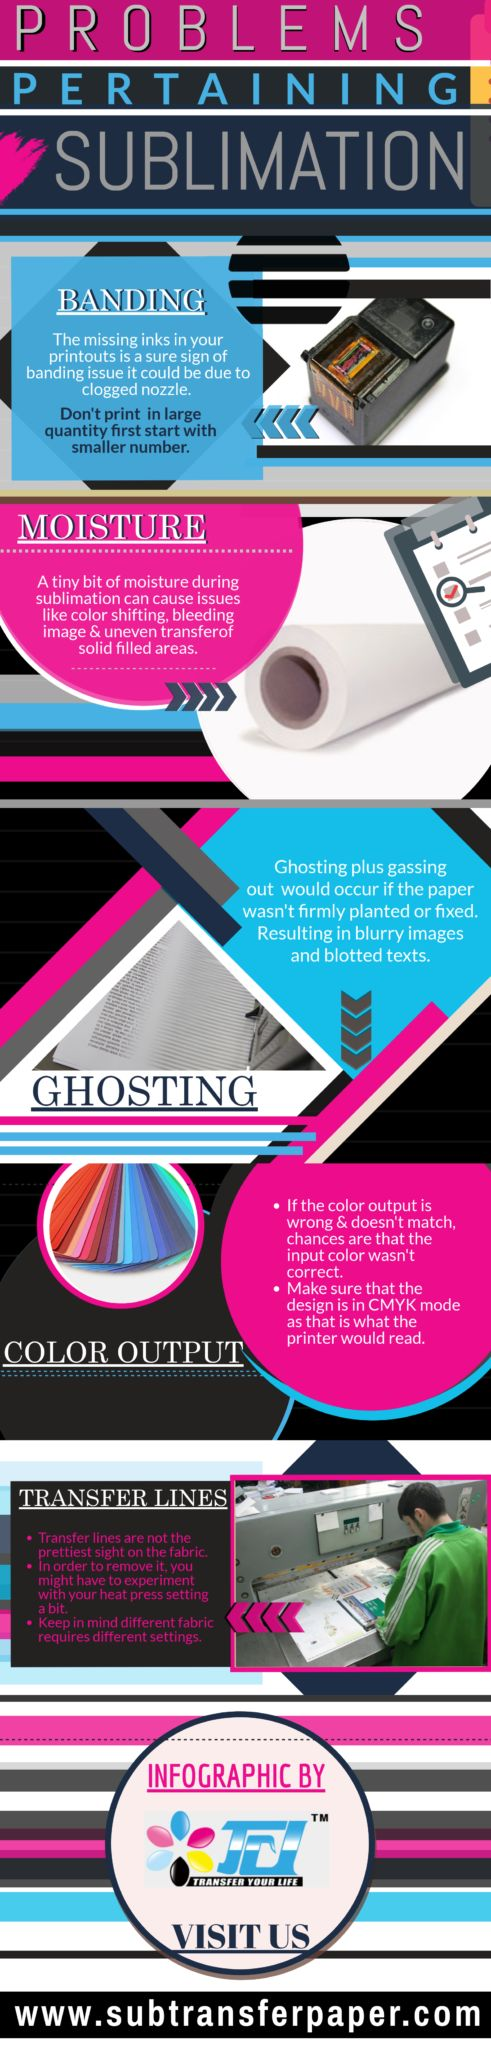 """Check out the infographic on """"Problems Pertaining to Sublimation"""". To learn more about sublimation paper and ink, visit the site at http://www.subtransferpaper.com"""